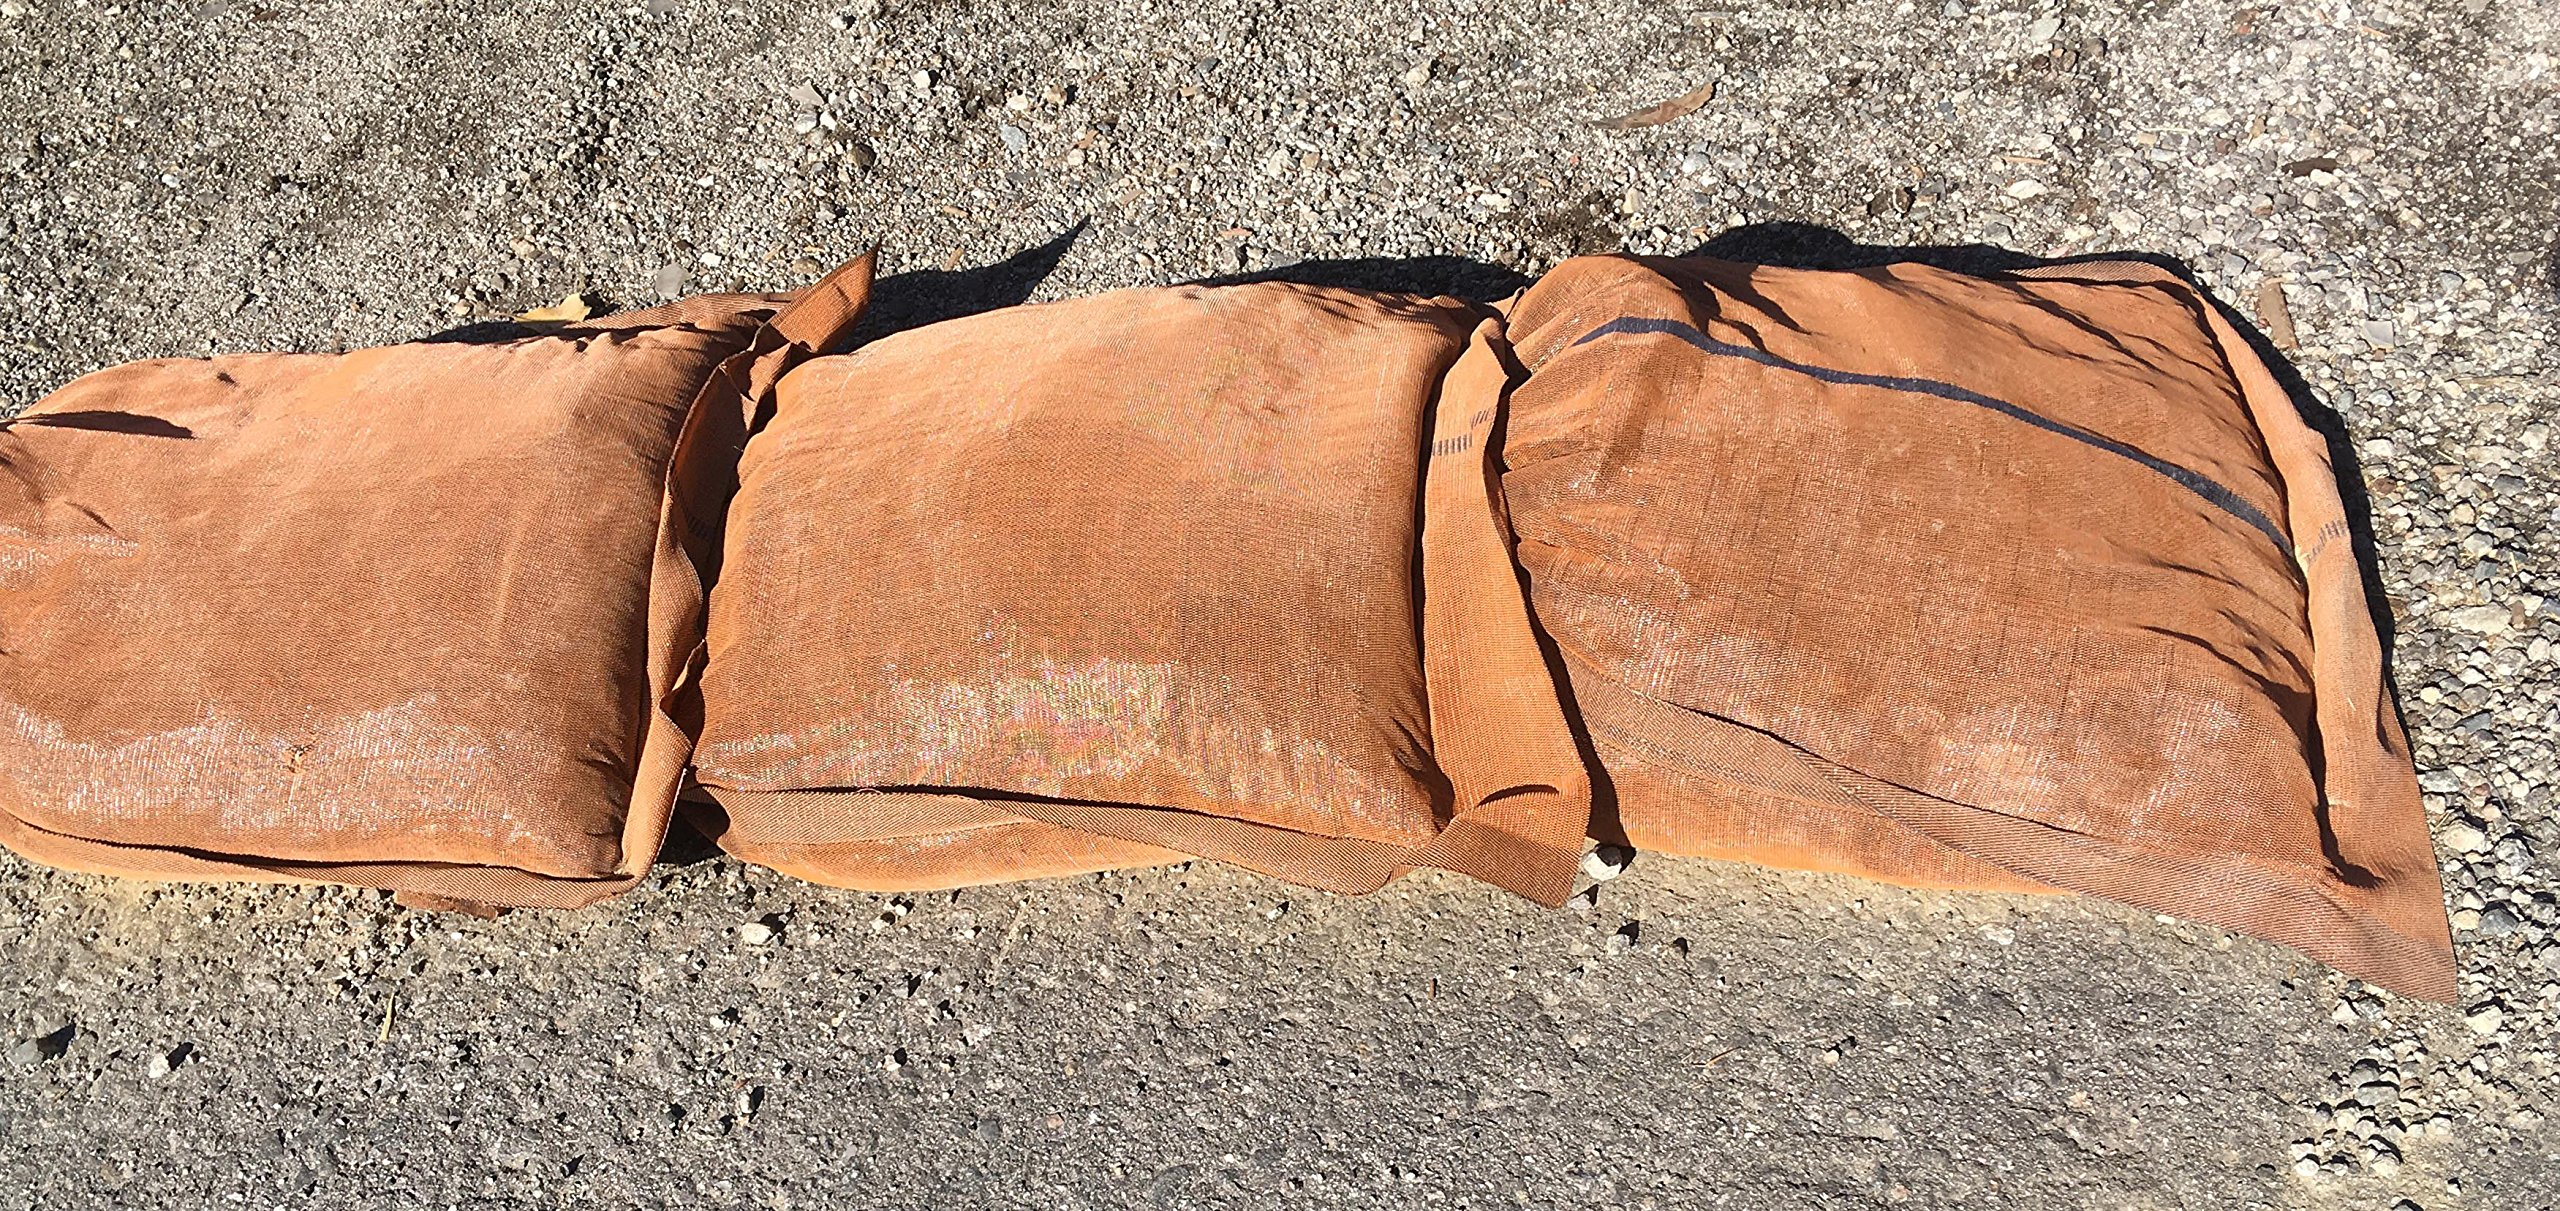 Sandbaggy - 17'' x 27'' Long-Lasting Sandbags - Brown Color - Lasts 1-2 Yrs - Monofilament (Pack of 100) by Sandbaggy (Image #7)